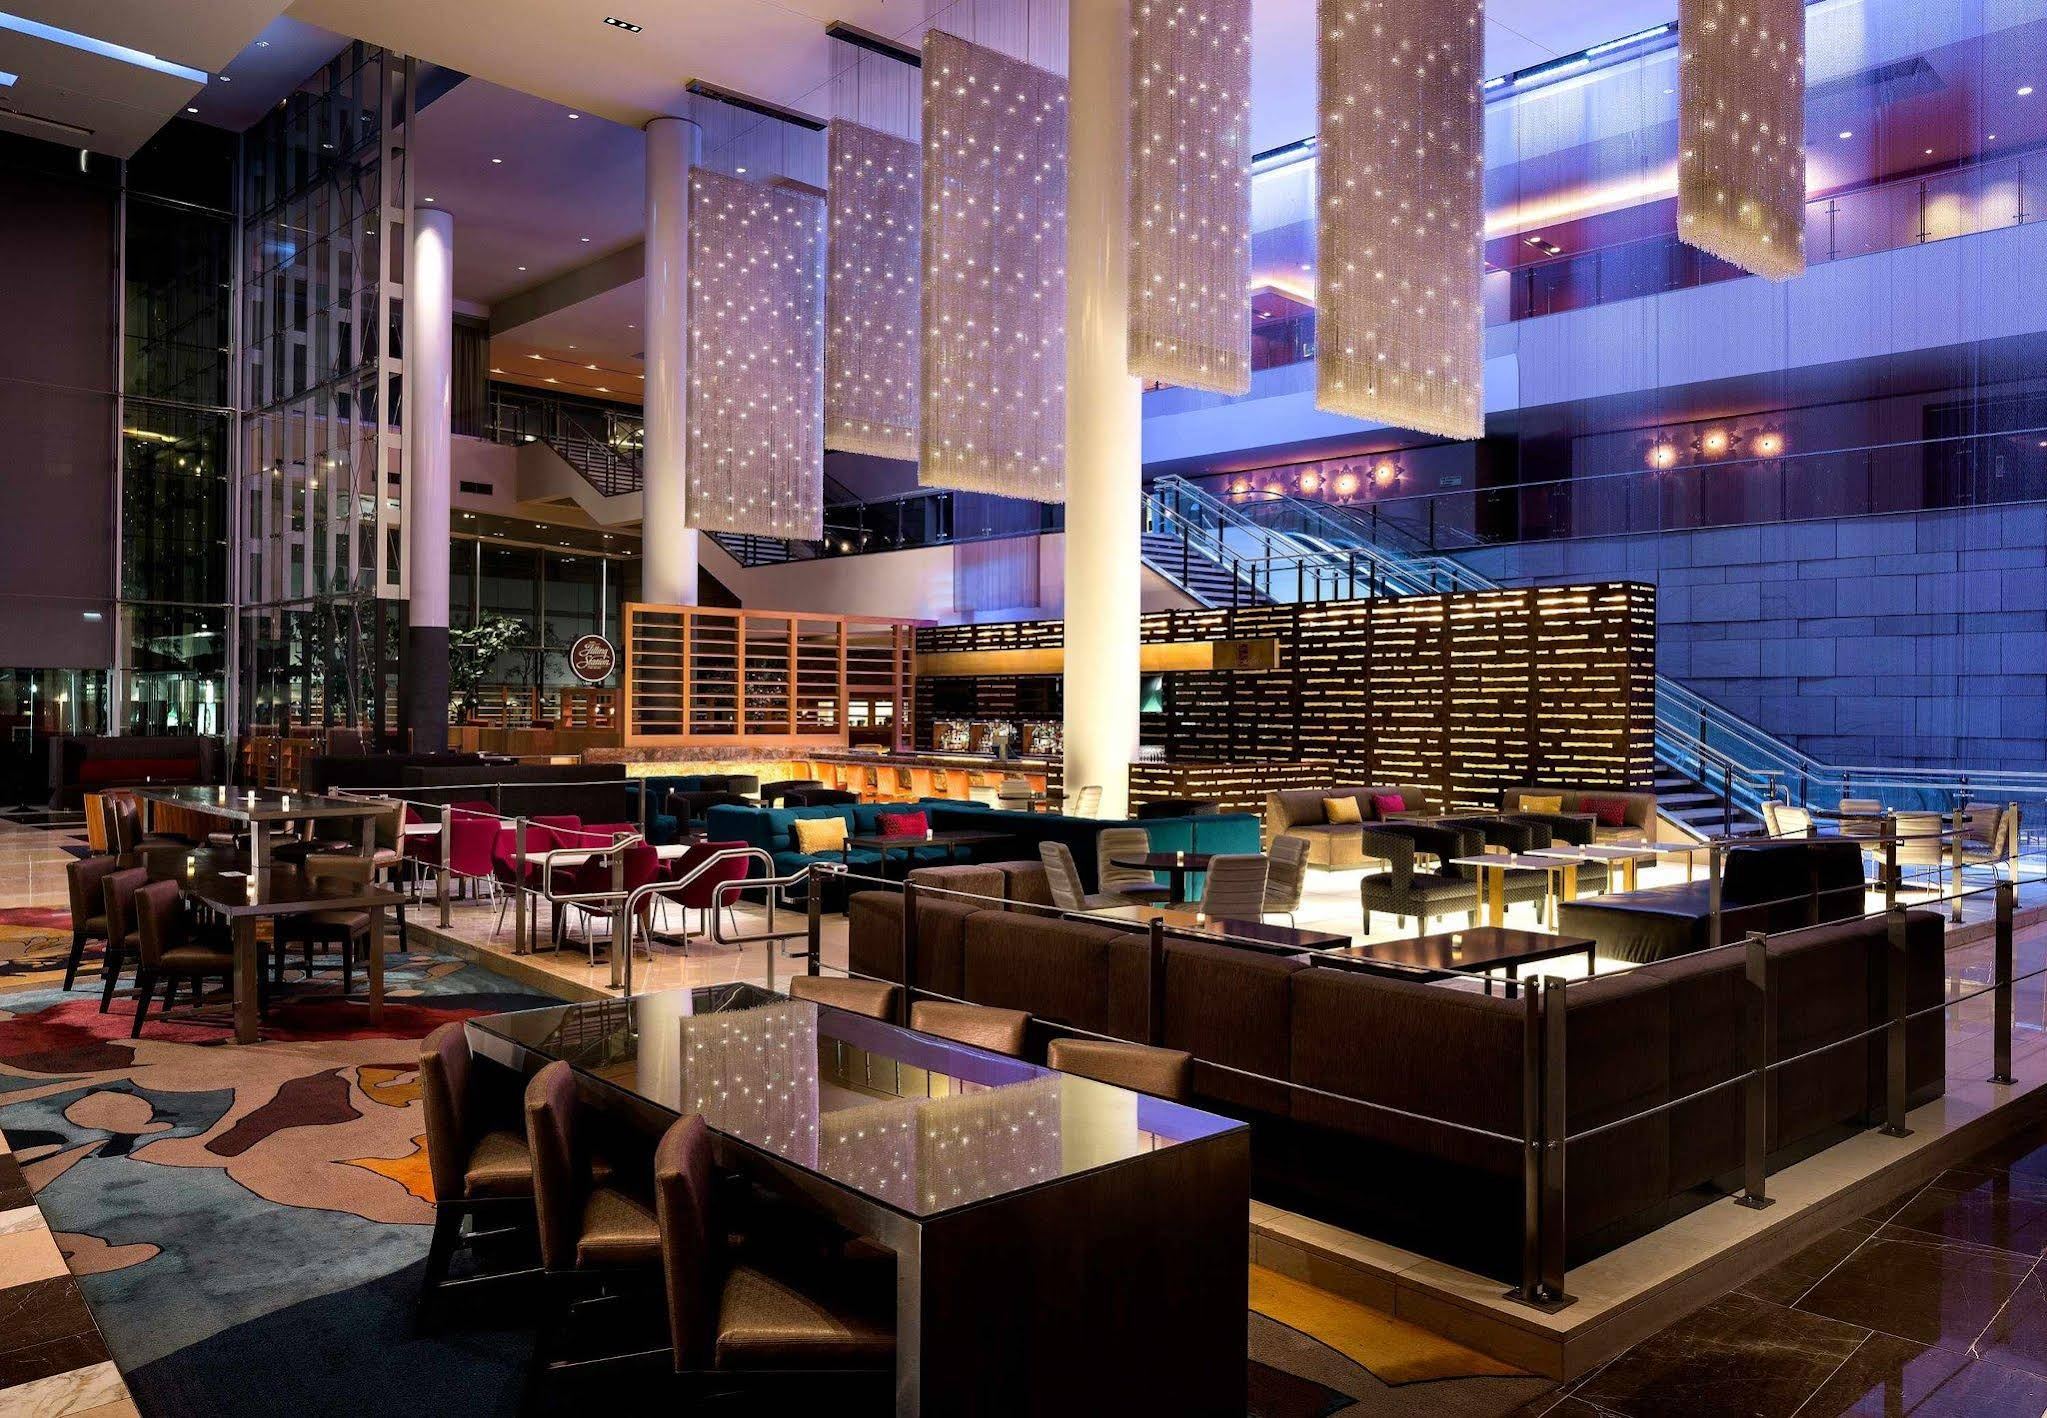 JW Marriott at L.A. Live